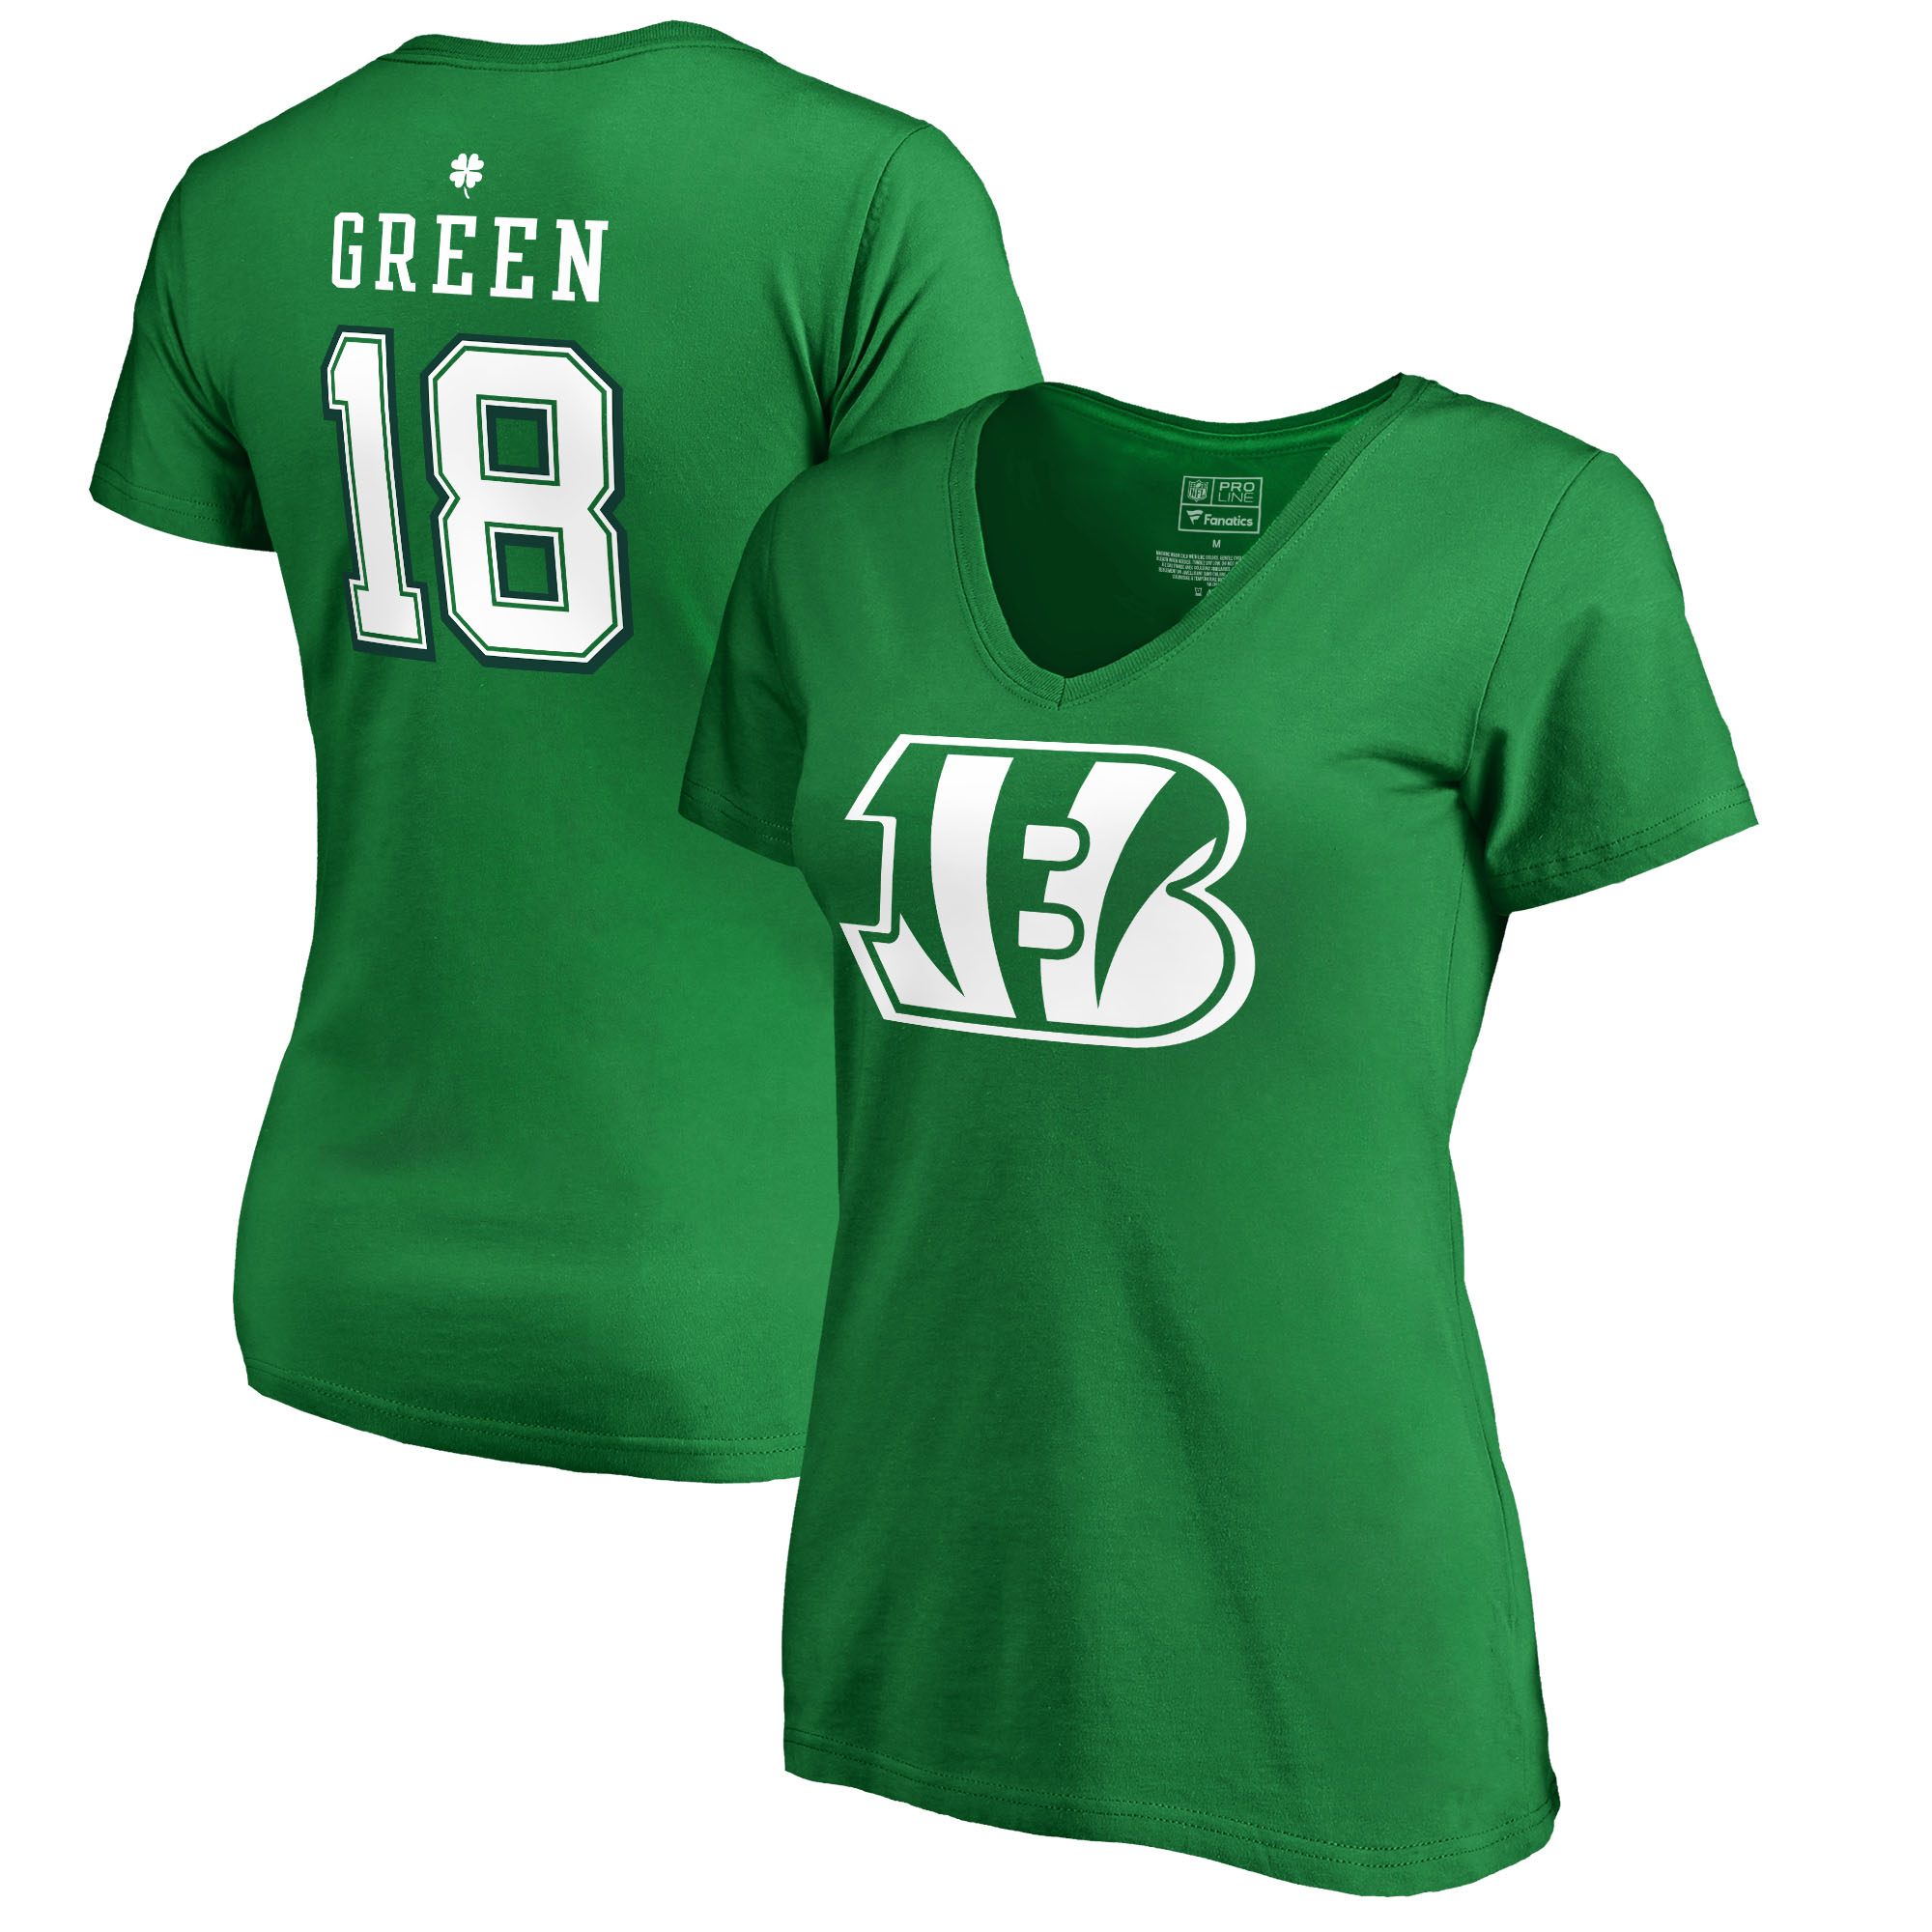 A.J. Green Cincinnati Bengals NFL Pro Line by Fanatics Branded Women's St. Patrick's Day Icon V-Neck Name & Number T-Shirt - Kelly Green